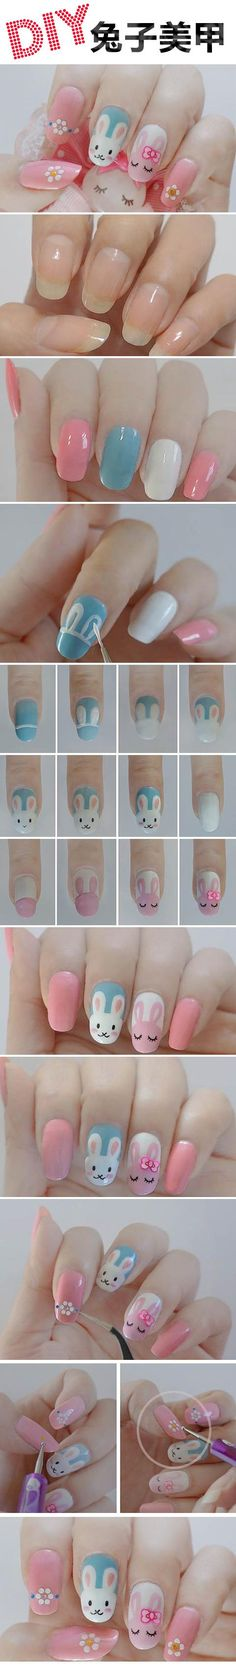 Cute Rabbit Nail Design Tutorials #nails #nail art design